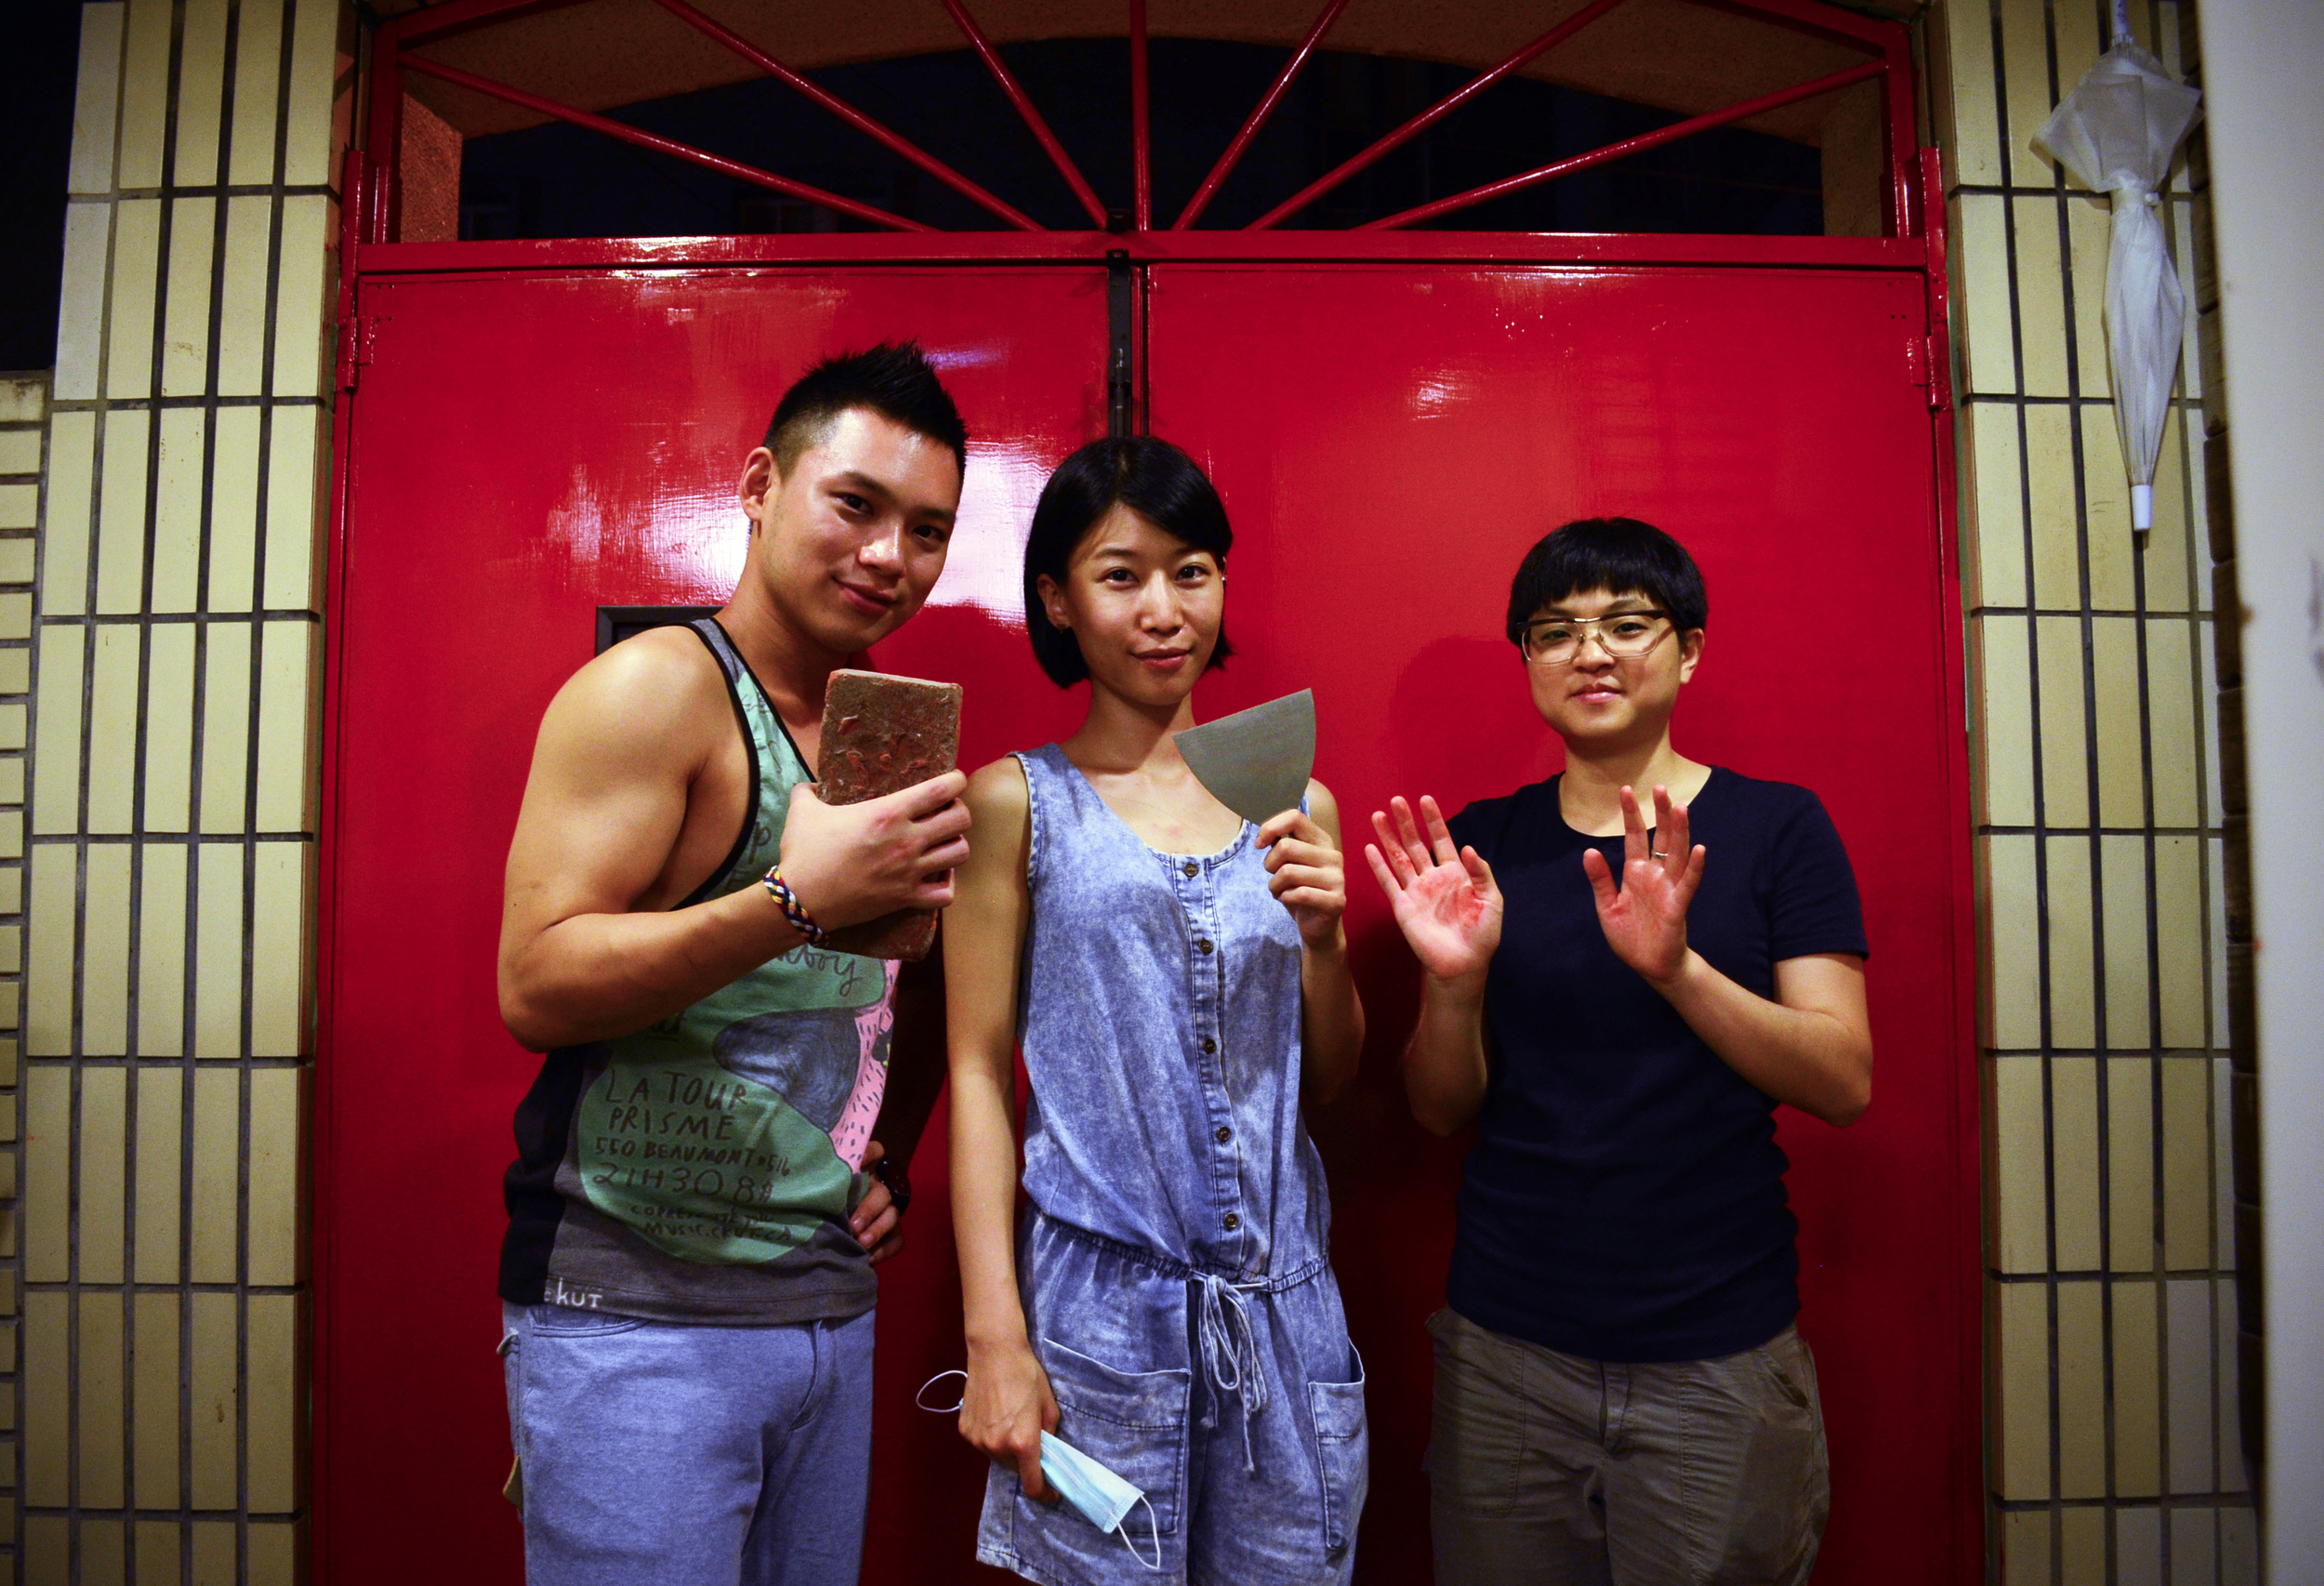 three-little-birds-taipei-taiwan-guesthouse-hostel-renovation-hardwork-travel-shida-nightmarket-mrt-warm-hospitality-welcoming-tourist